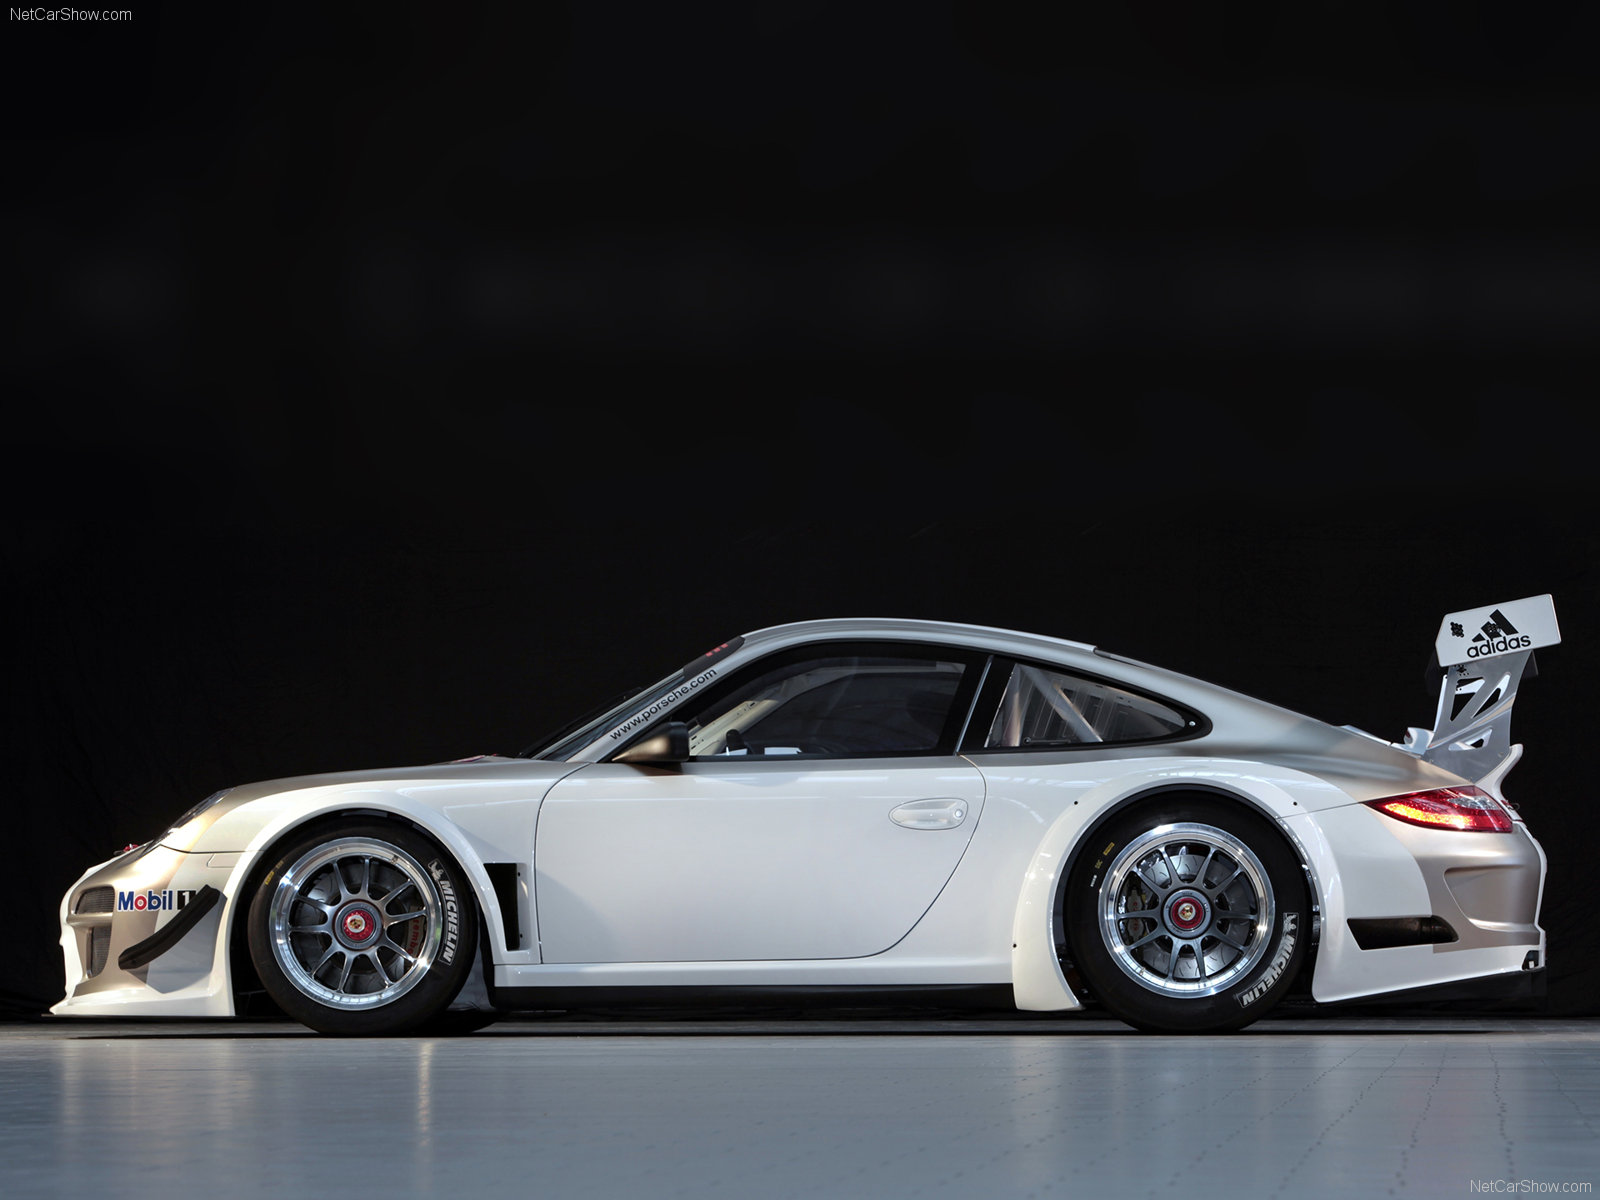 2010 White Porsche 911 GT3 R wallpapers 1600x1200